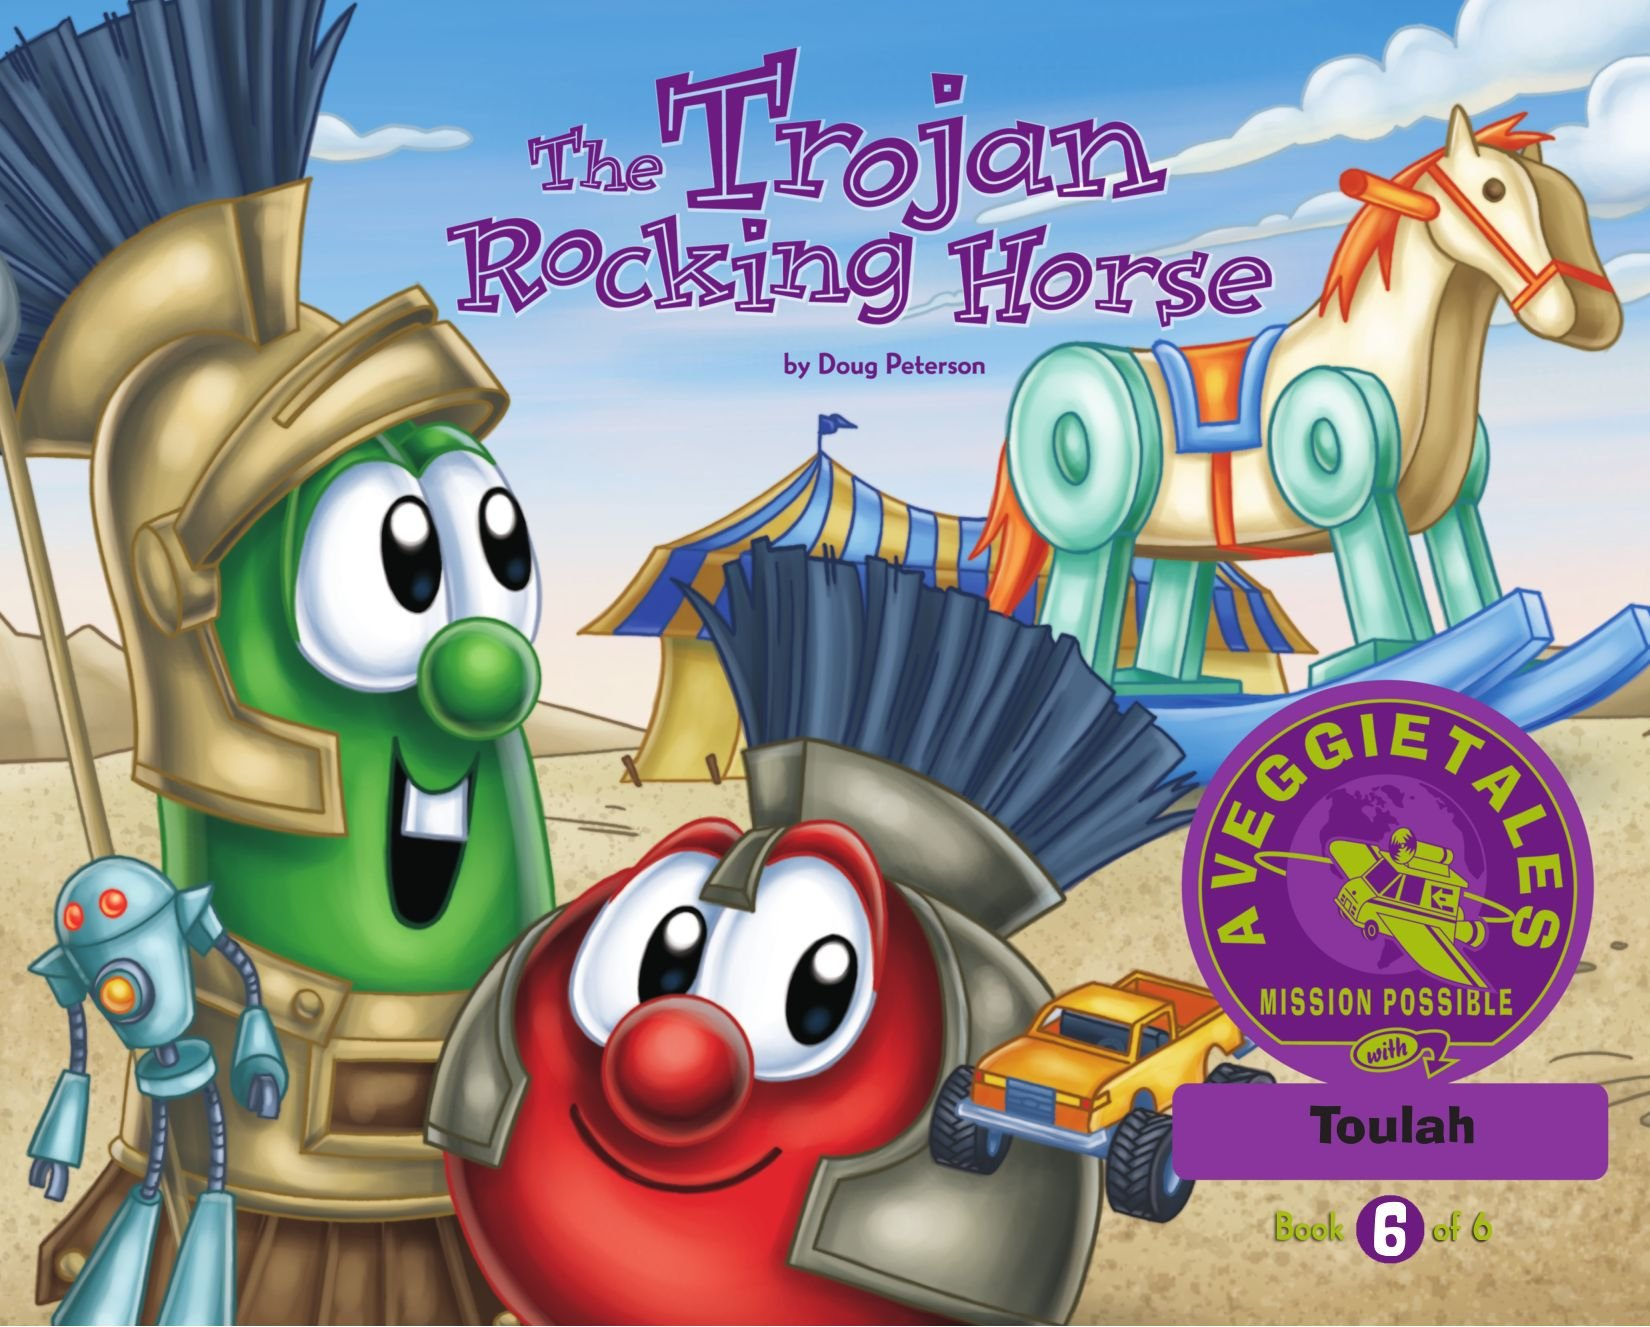 Download The Trojan Rocking Horse - VeggieTales Mission Possible Adventure Series #6: Personalized for Toulah (Girl) pdf